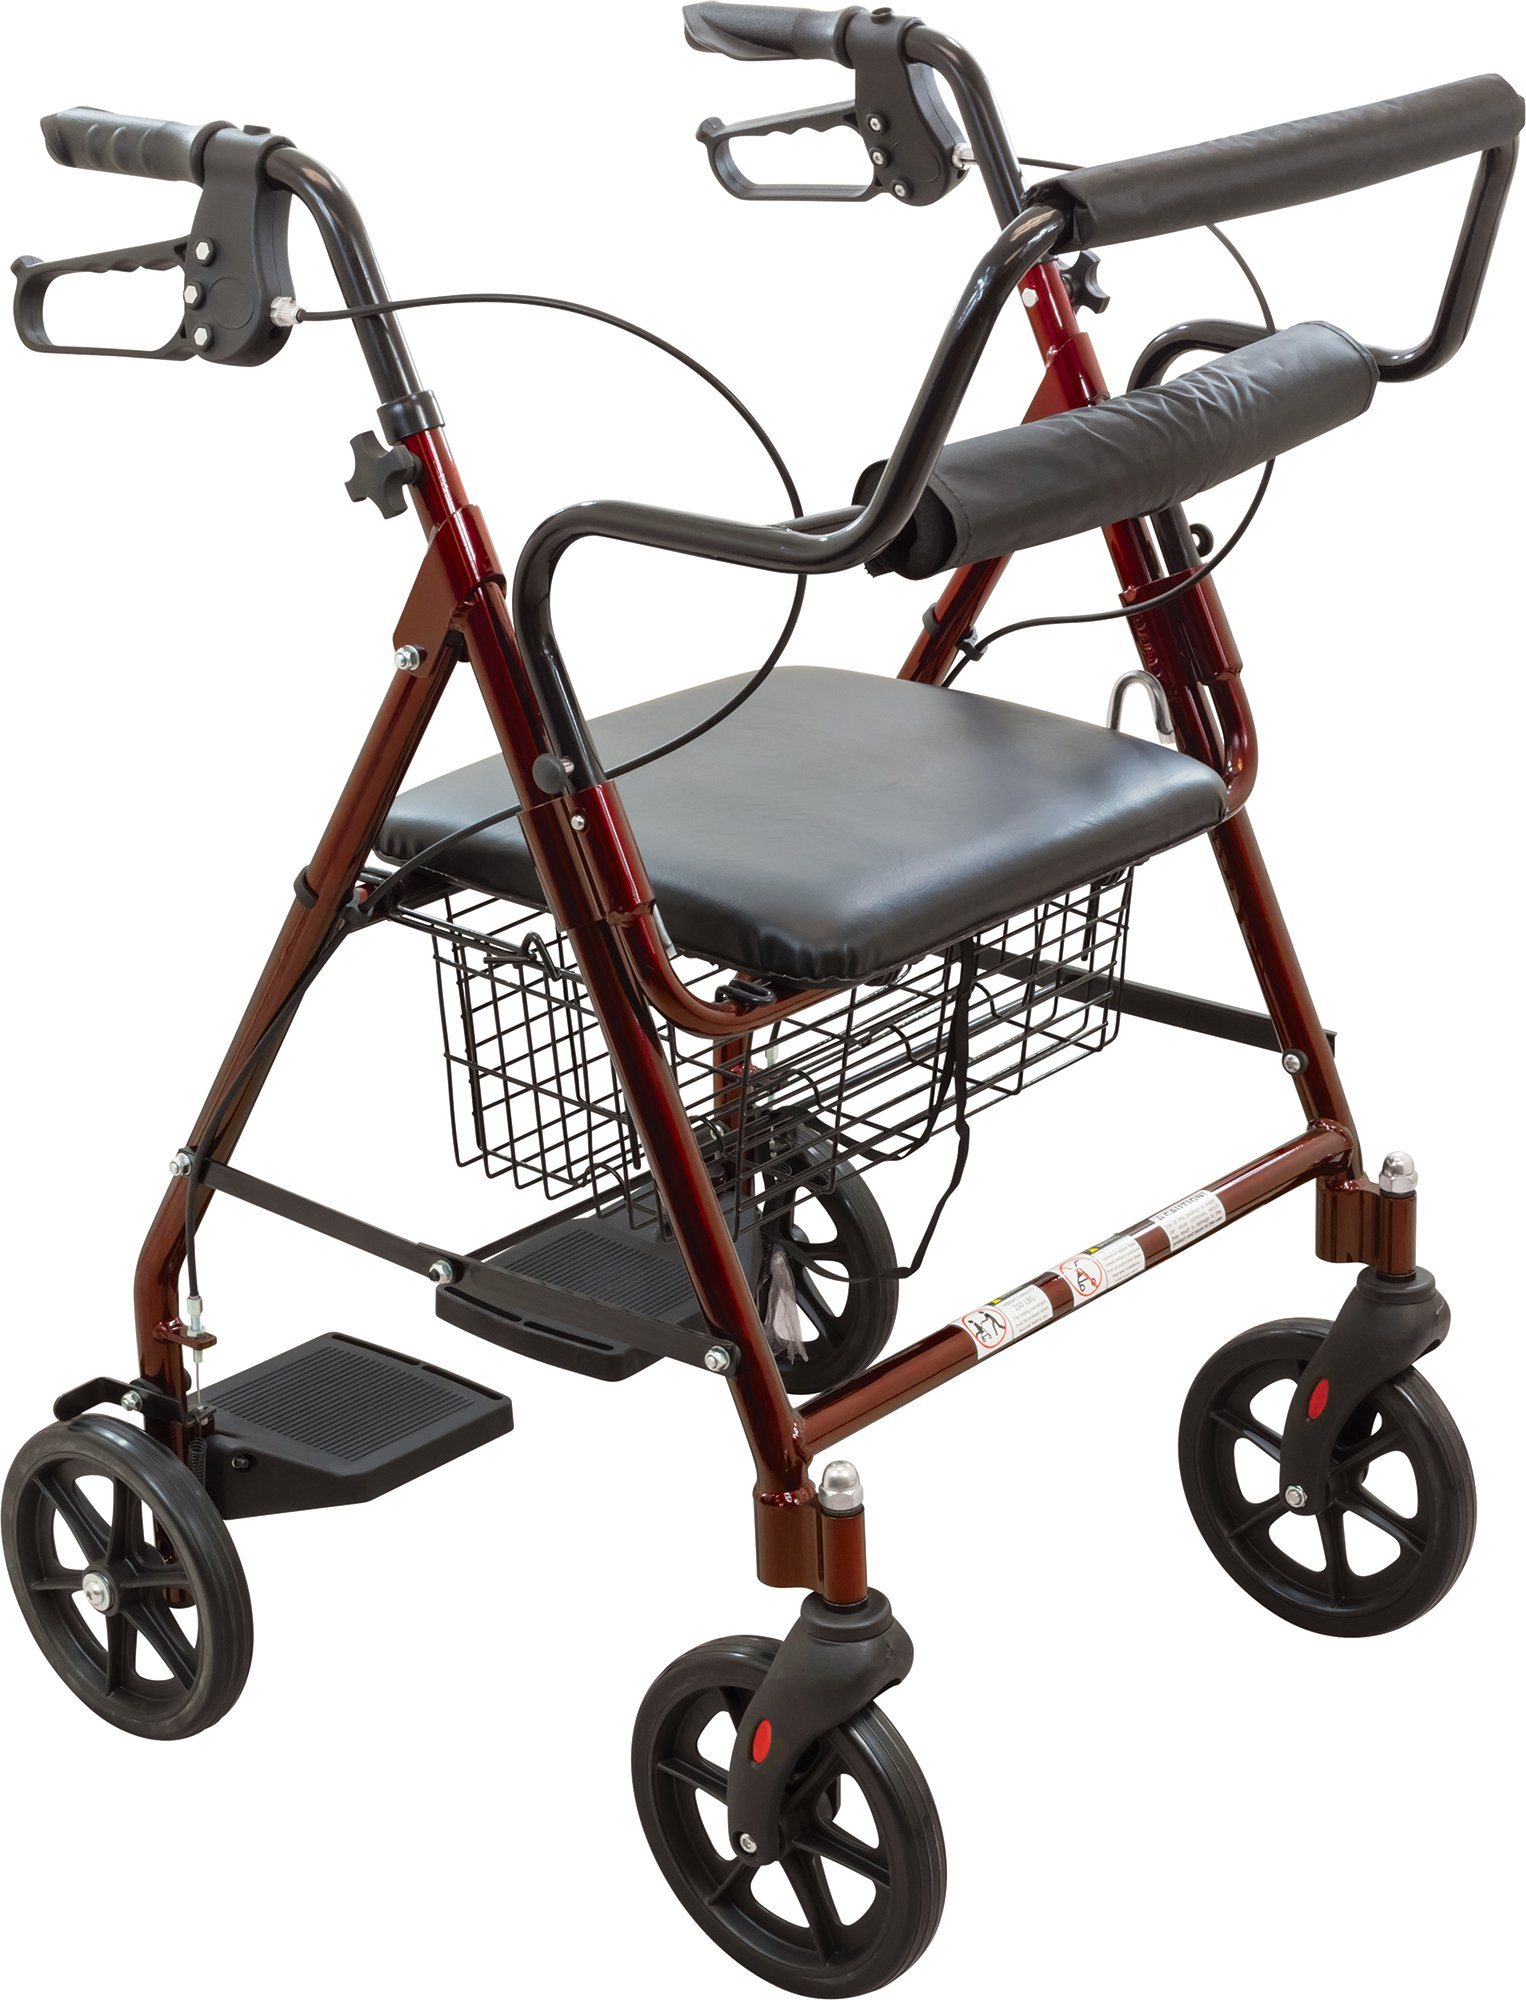 Roscoe Transport Rollator with Padded Seat, Burgundy, Easy Folding System, 8 Inch Wheels, Weight Capacity: 250 Pounds